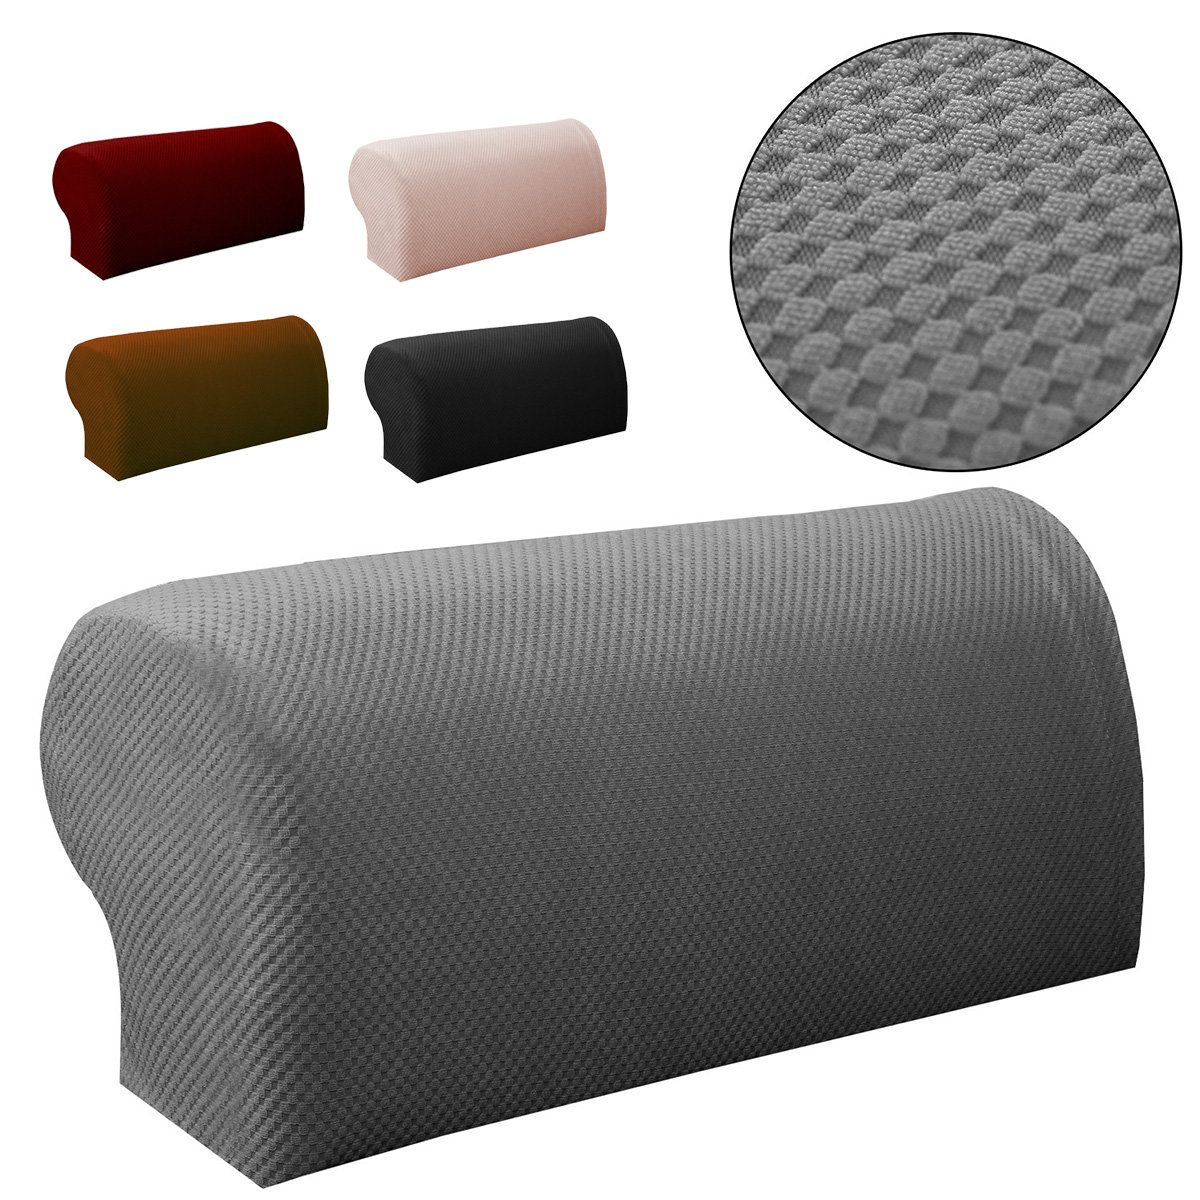 2pcs Premium Furniture Armrest Cover Sofa Couch Chair Arm Protectors Stretchy Couch Chair Sofa Covers Sofa Covers Online